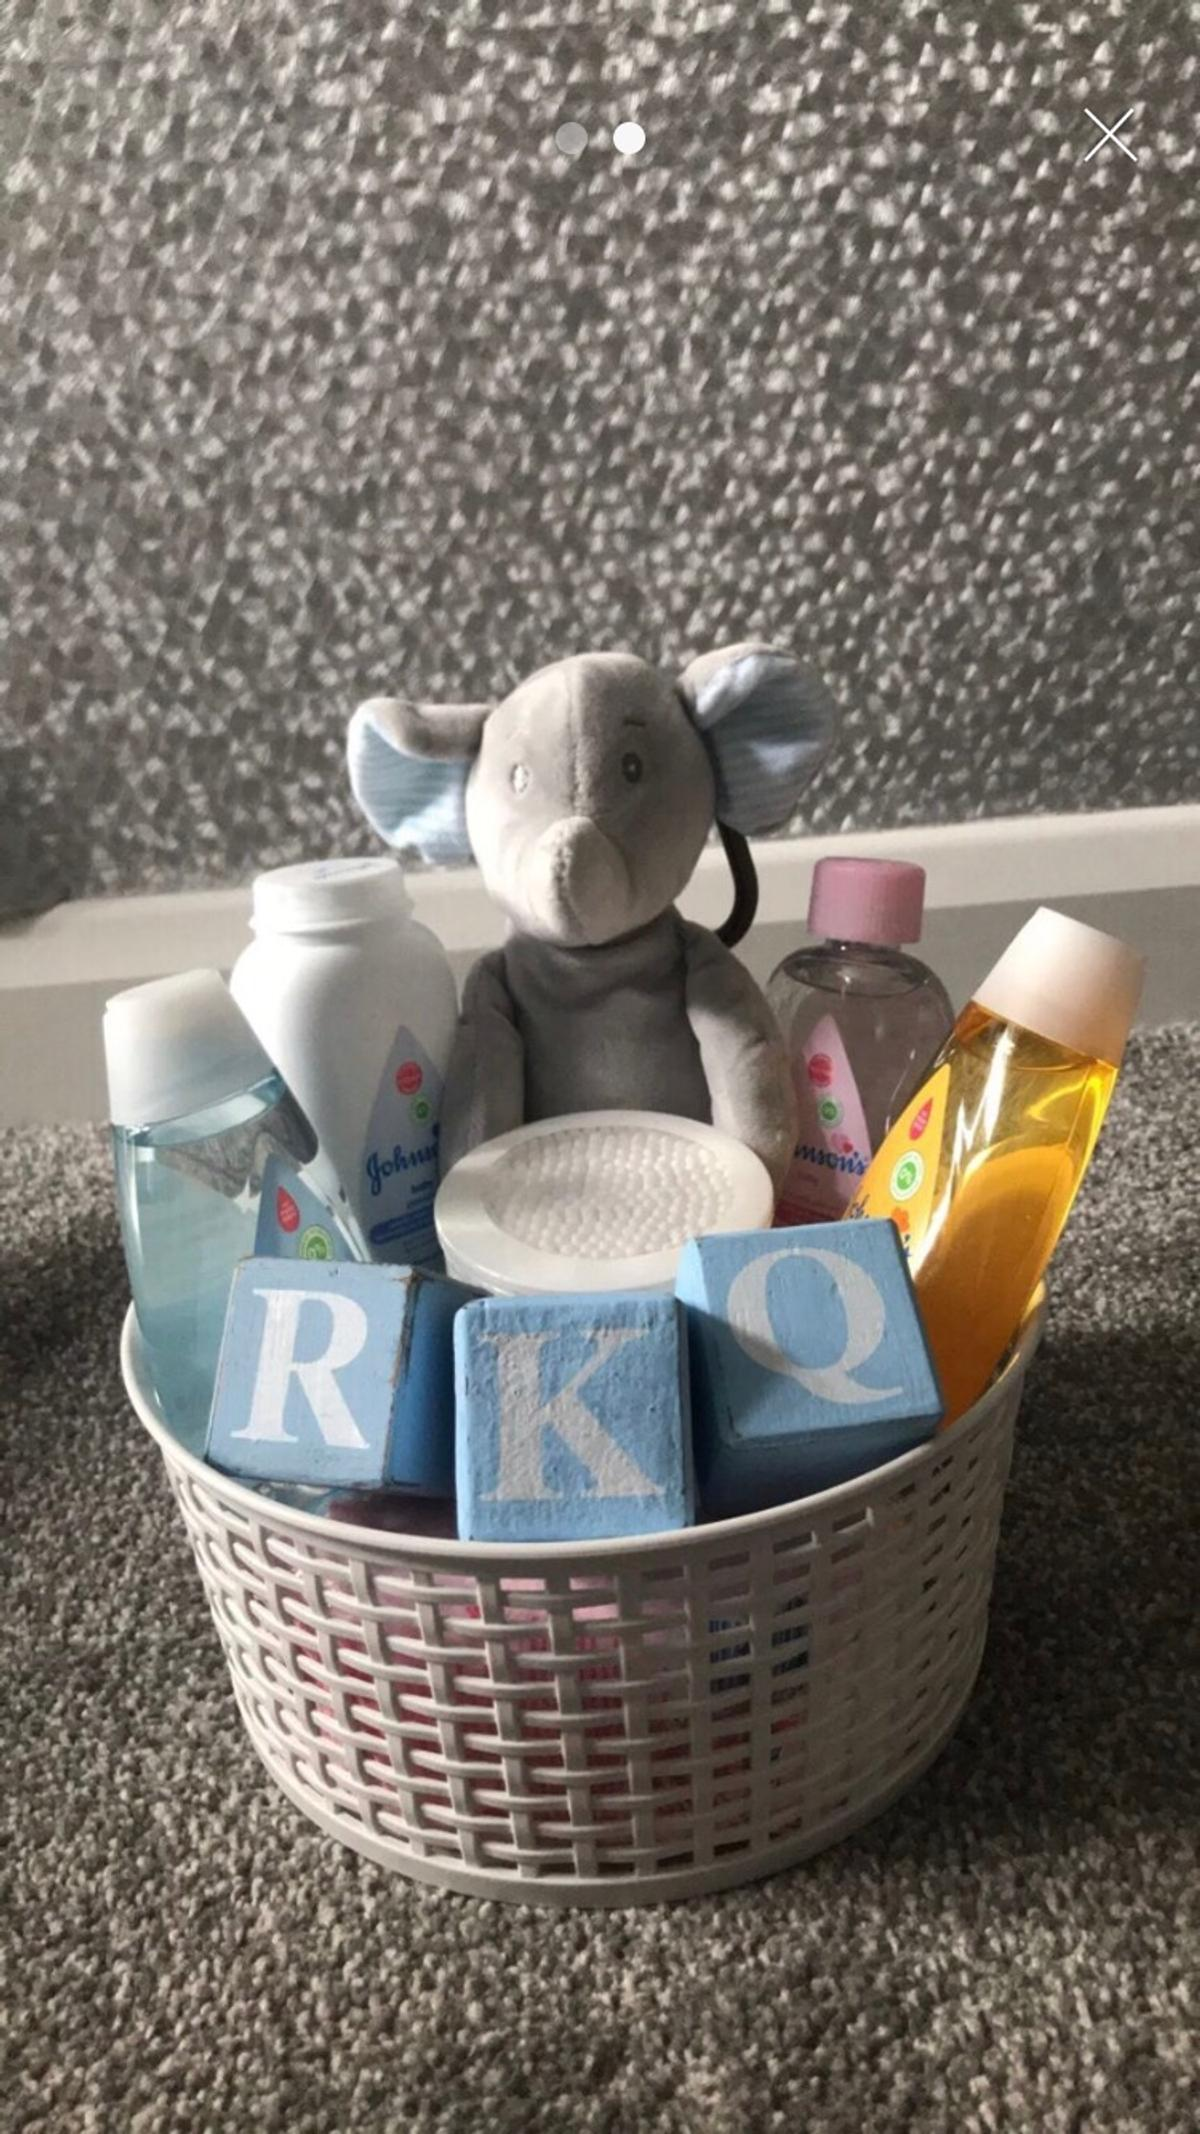 Small hamper basket £15 plus £1 per letter if wanted. Includes.. 1 x rattle teddy, 4 x toiletries, 1 x cotton buds, 1 x cotton pads, 1 x baby wipes, 1 x Muslin. Extras can be added such as photo frame or extra baby gifts for additional cost.